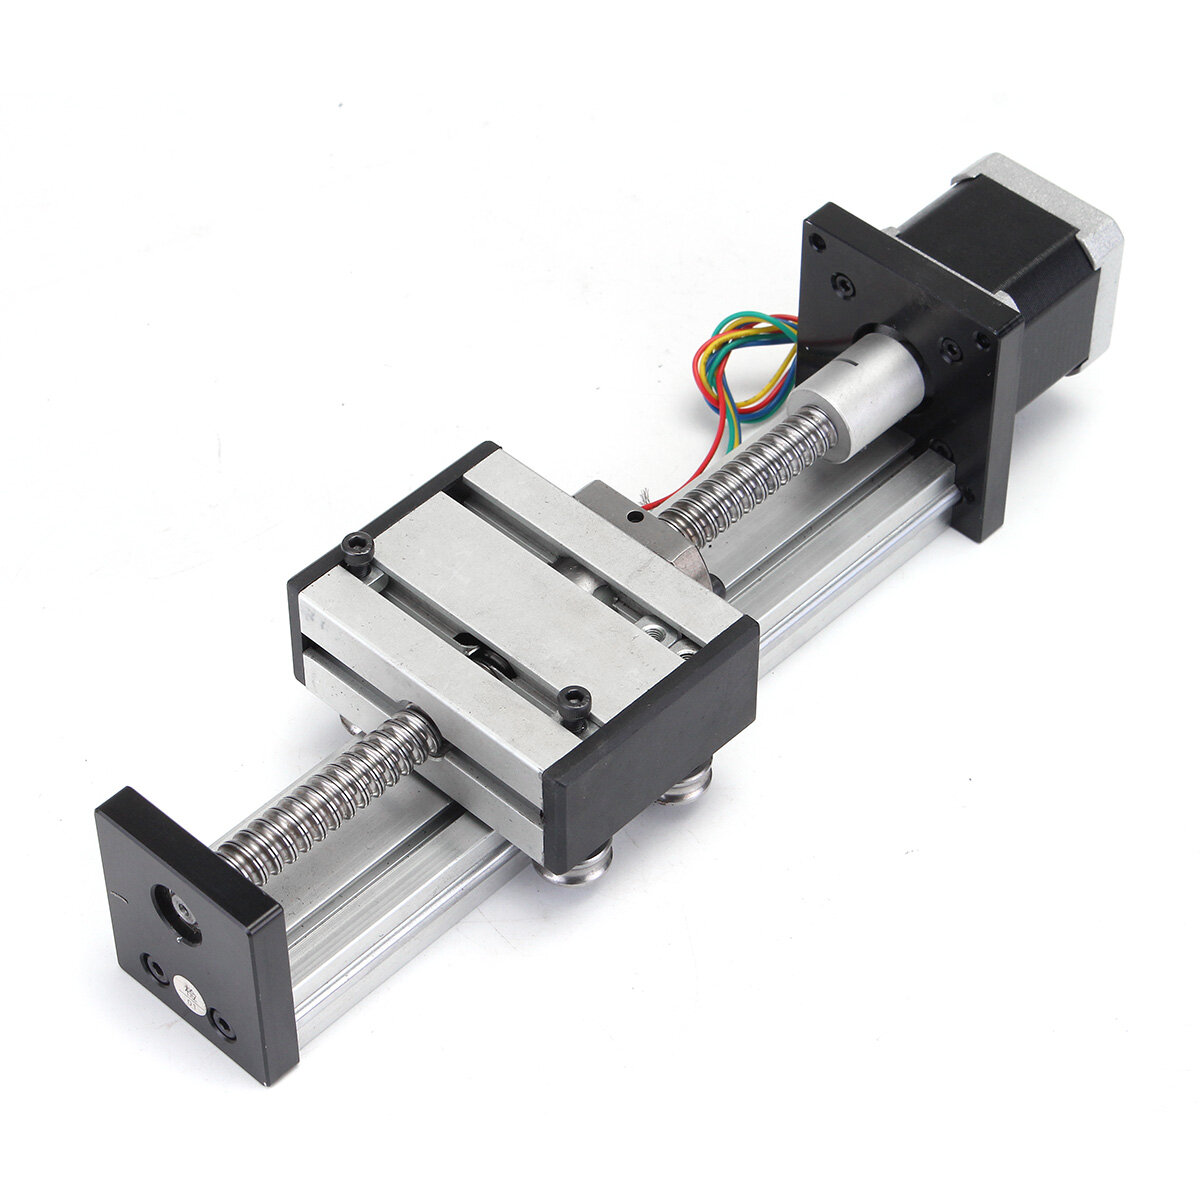 hight resolution of 100mm long stage actuator linear stage 1204 ball screw linear slide stroke with 42mm stepper motor cod